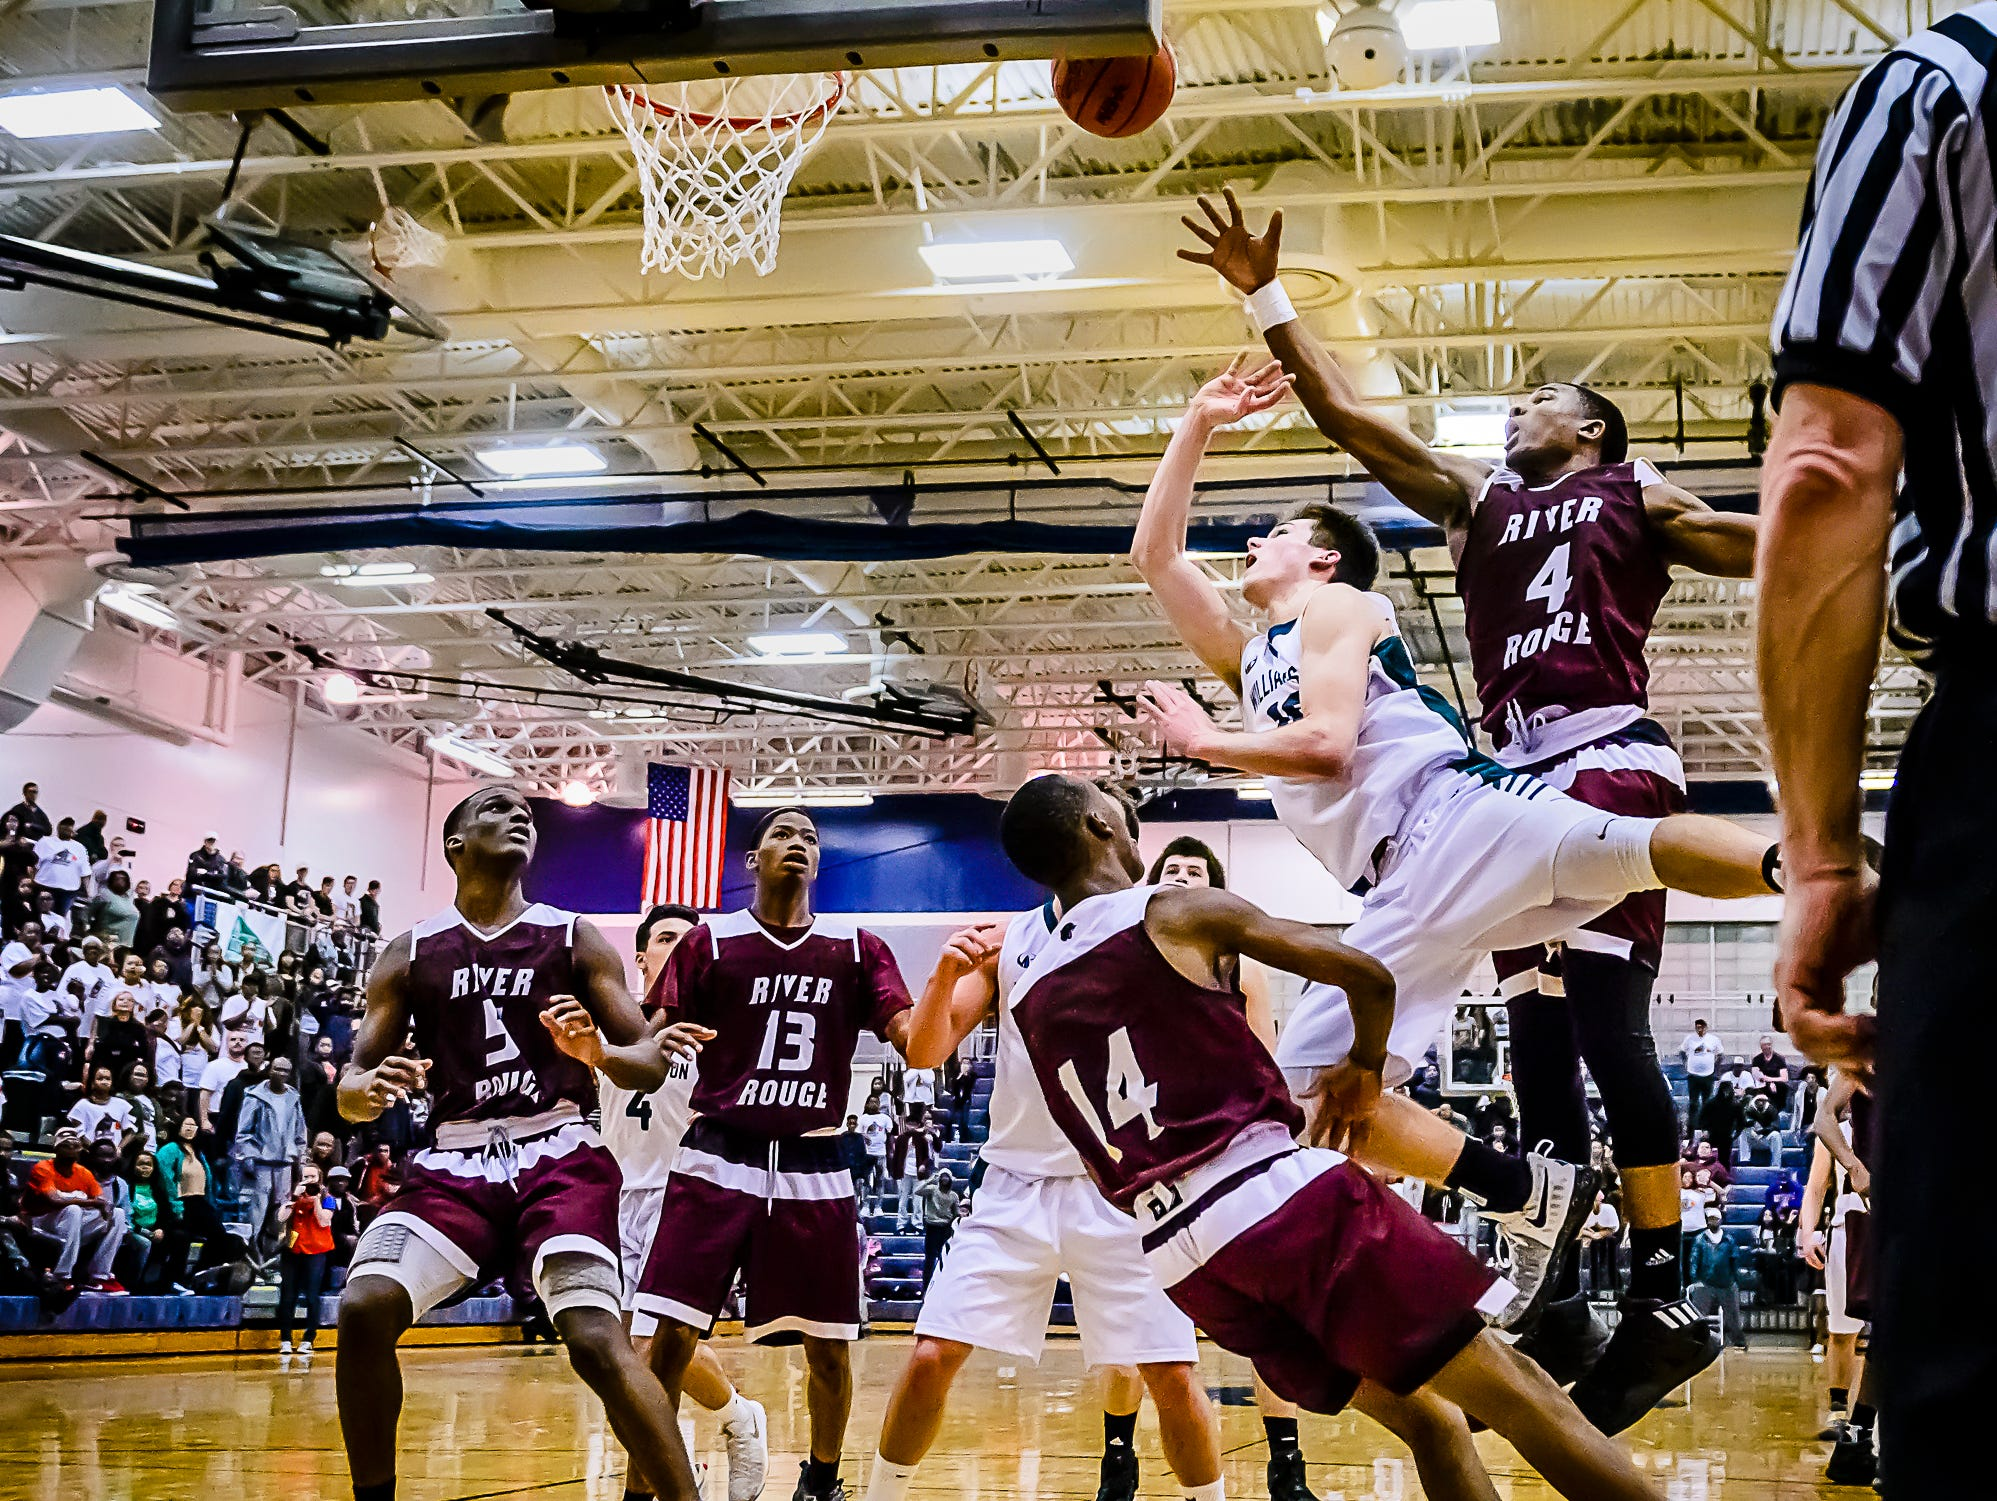 Mitchell Cook ,second from right, of Williamston lays the ball up and in as he collides with Jayvien Torrence ,14, of River Rouge with 18 seconds remaining in their Class B state quarterfinal game and the score tied at 51 Tuesday March 21, 2017 at Chelsea High School in Chelsea. The basket was waived off as Cook was charged with a player control foul.